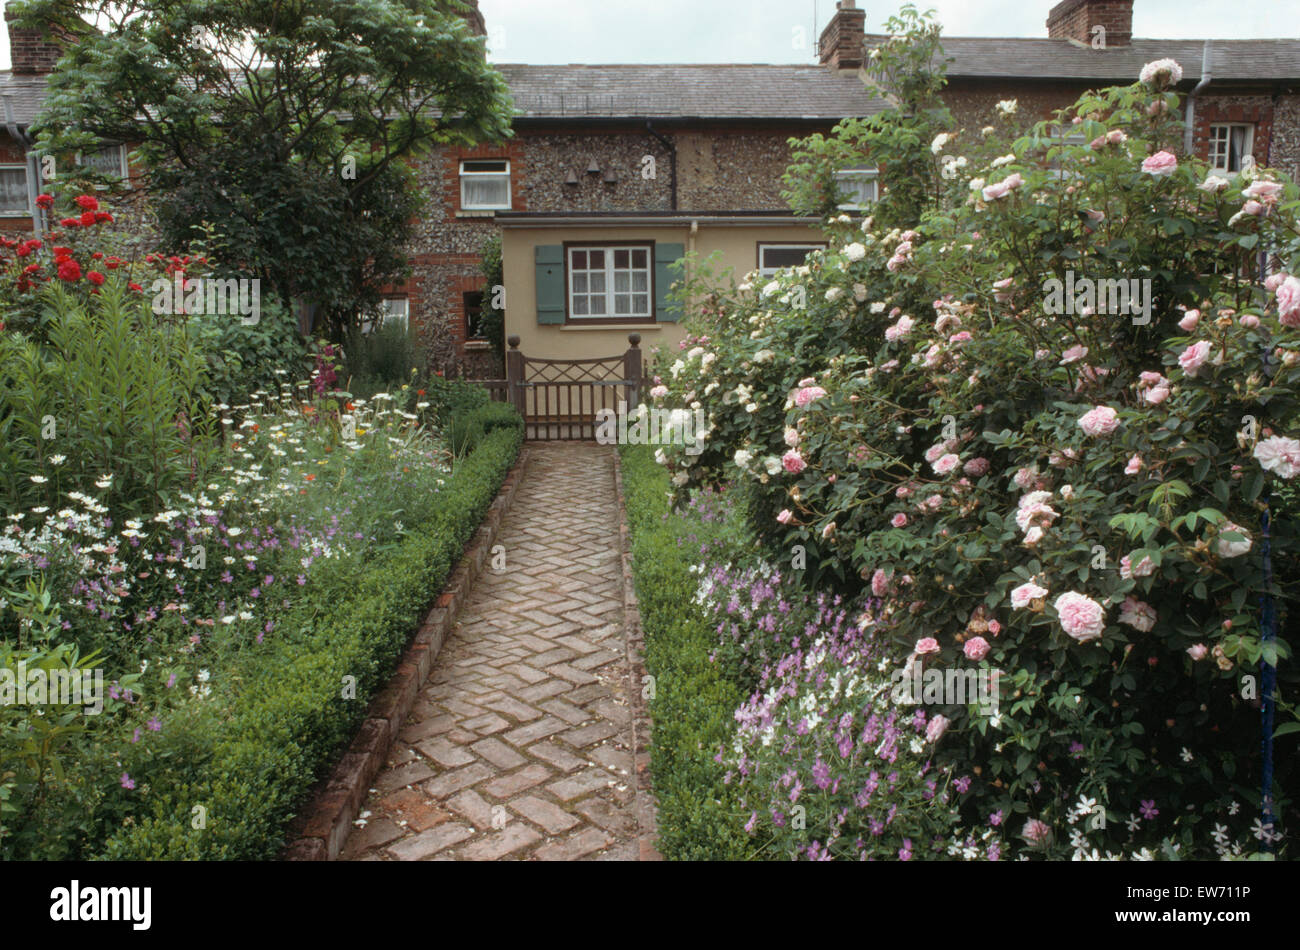 Brick Herringbone Paved Path With Box Edging Between Borders With Pink  Roses In Cottage Garden